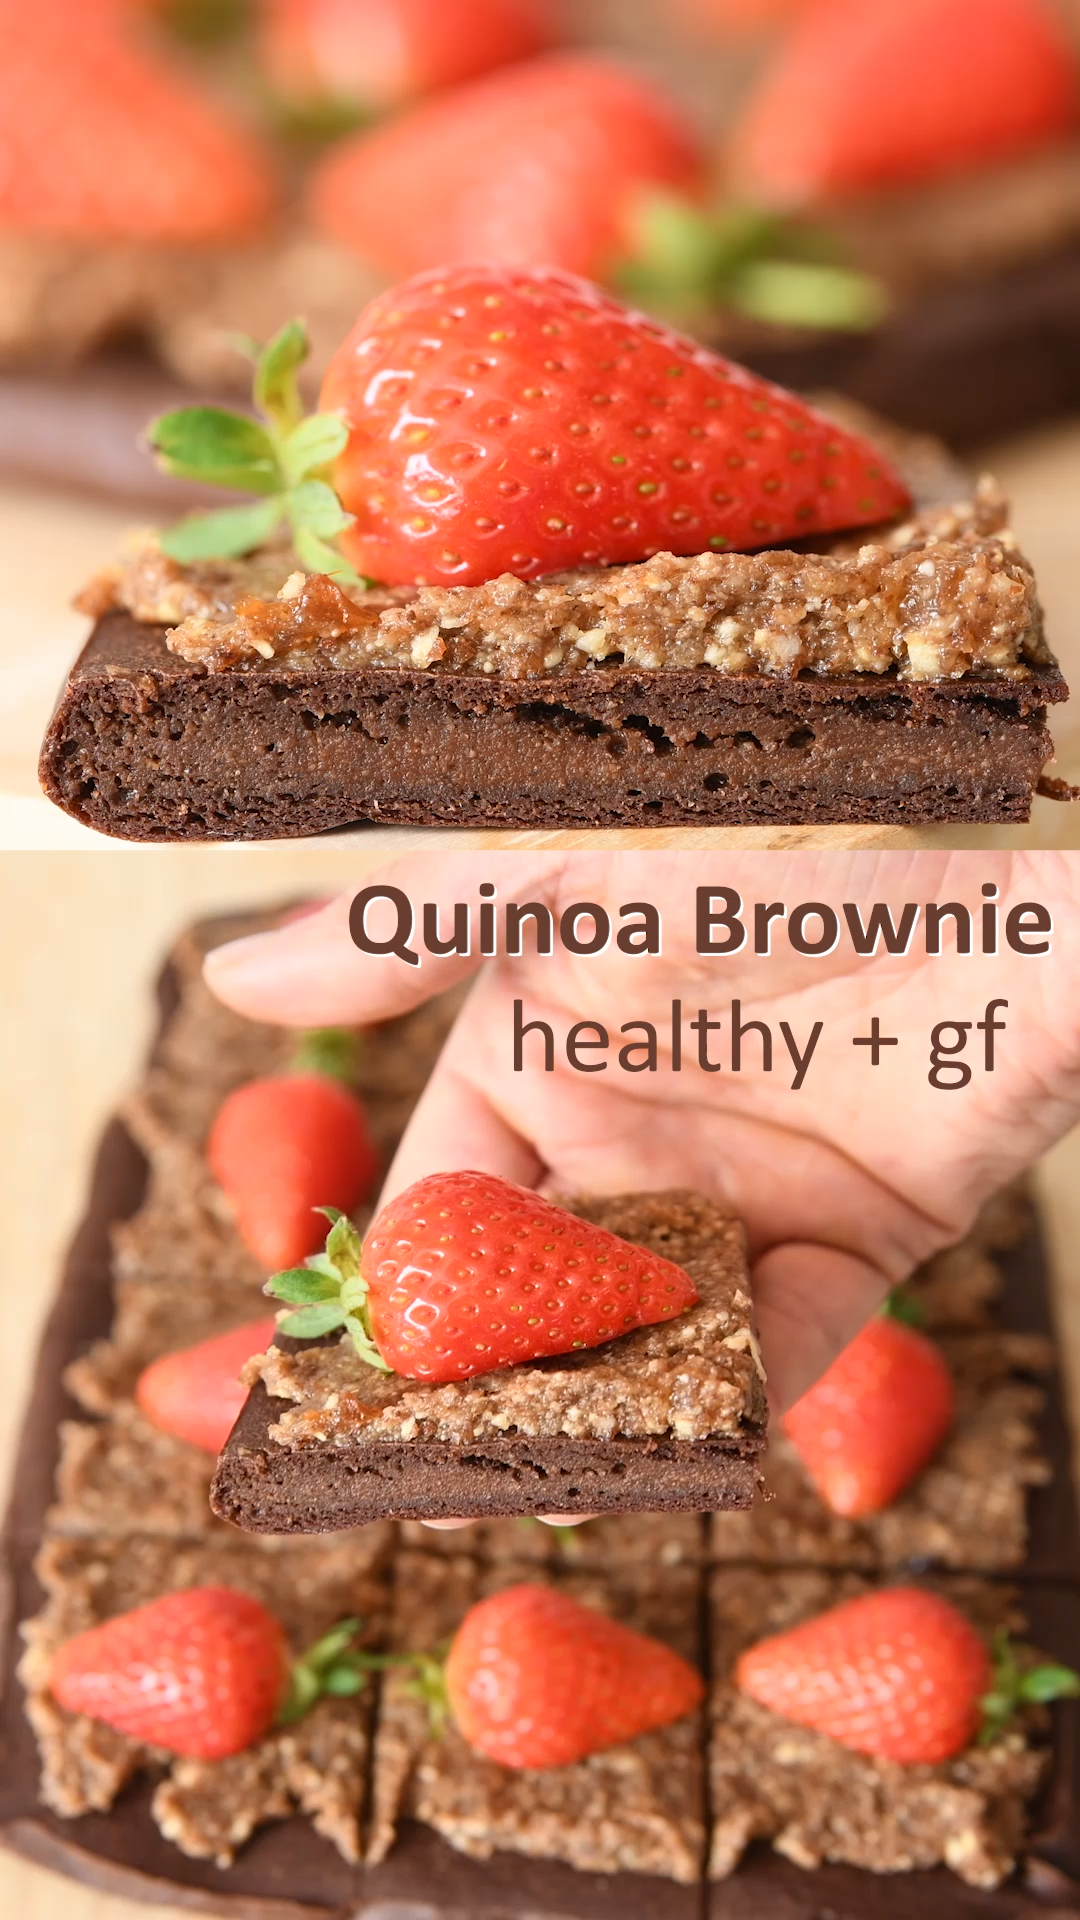 Quinoa Chocolate Brownie - 4 Ingredients -  Healthy quinoa brownies that are high in protein with n